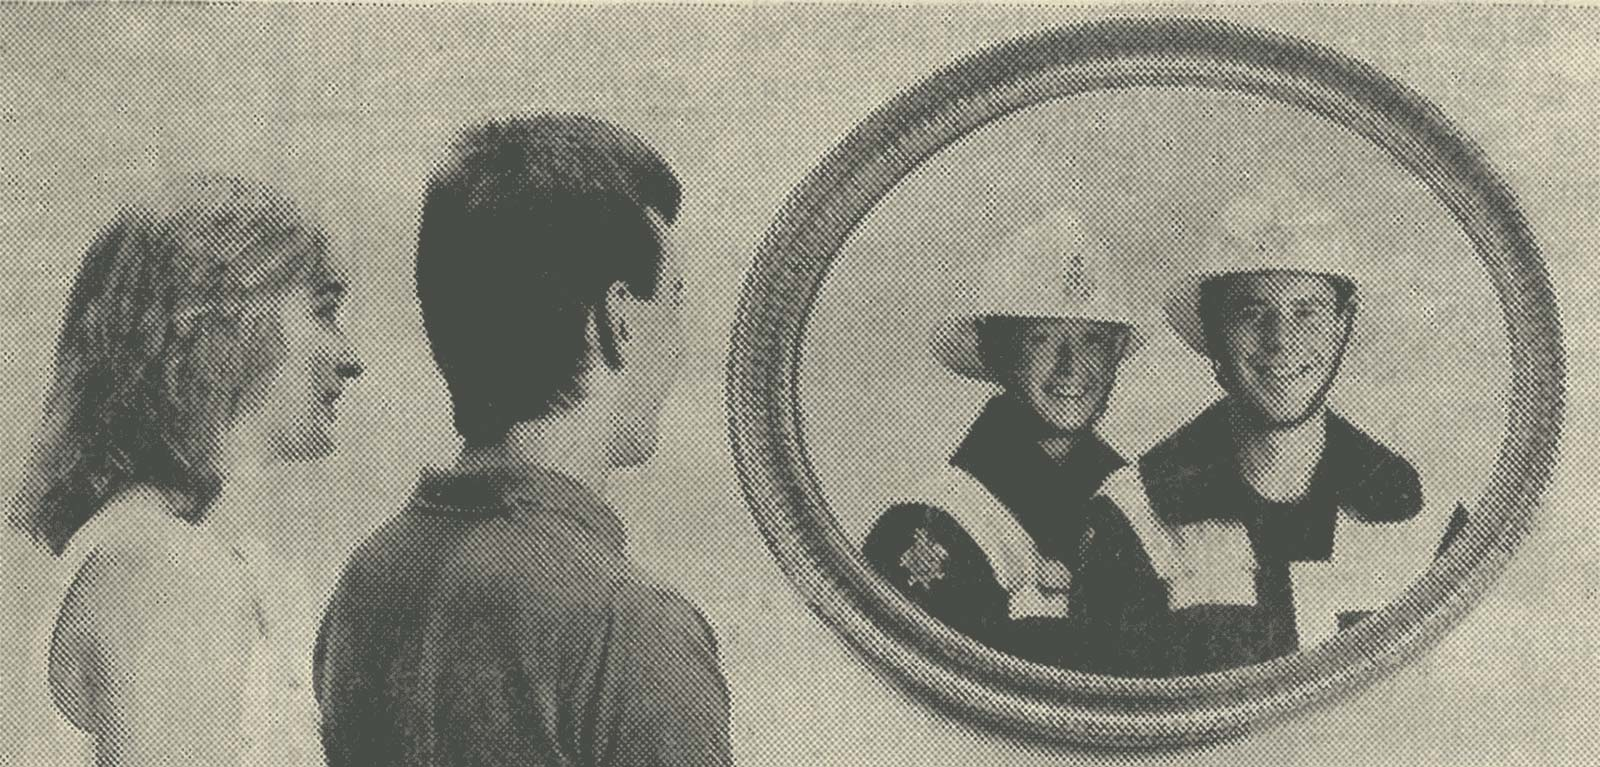 Image used in advertisement recruiting women and men firefighters in the  Sun  newspaper in 1989.